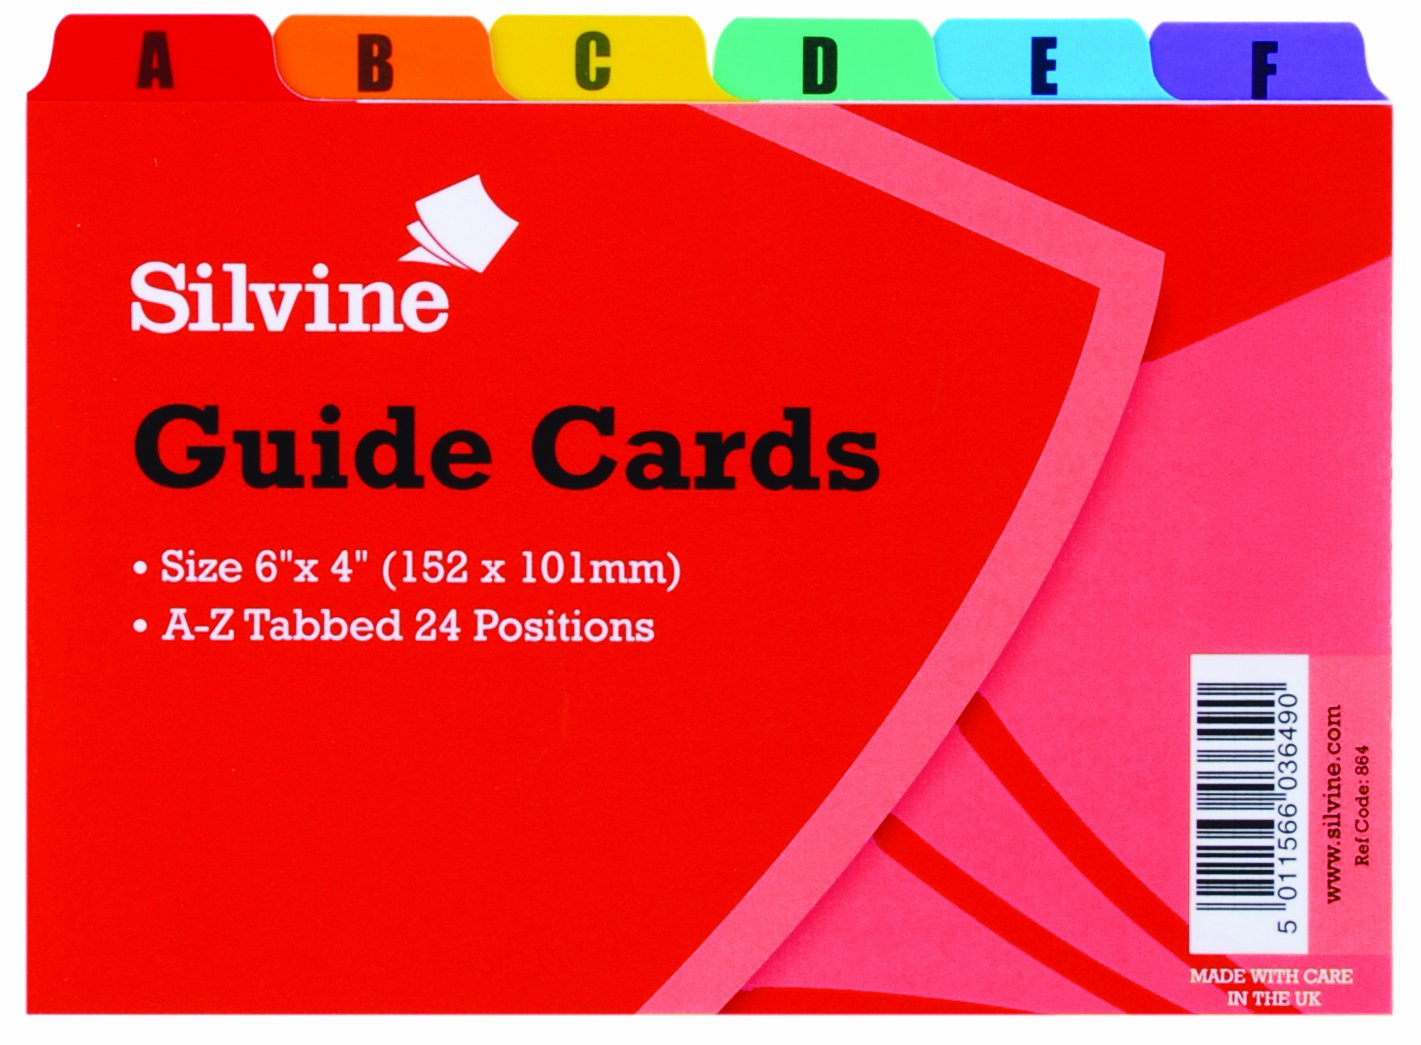 Silvine 6 x 4 inch Guide Cards: Amazon.co.uk: Office Products